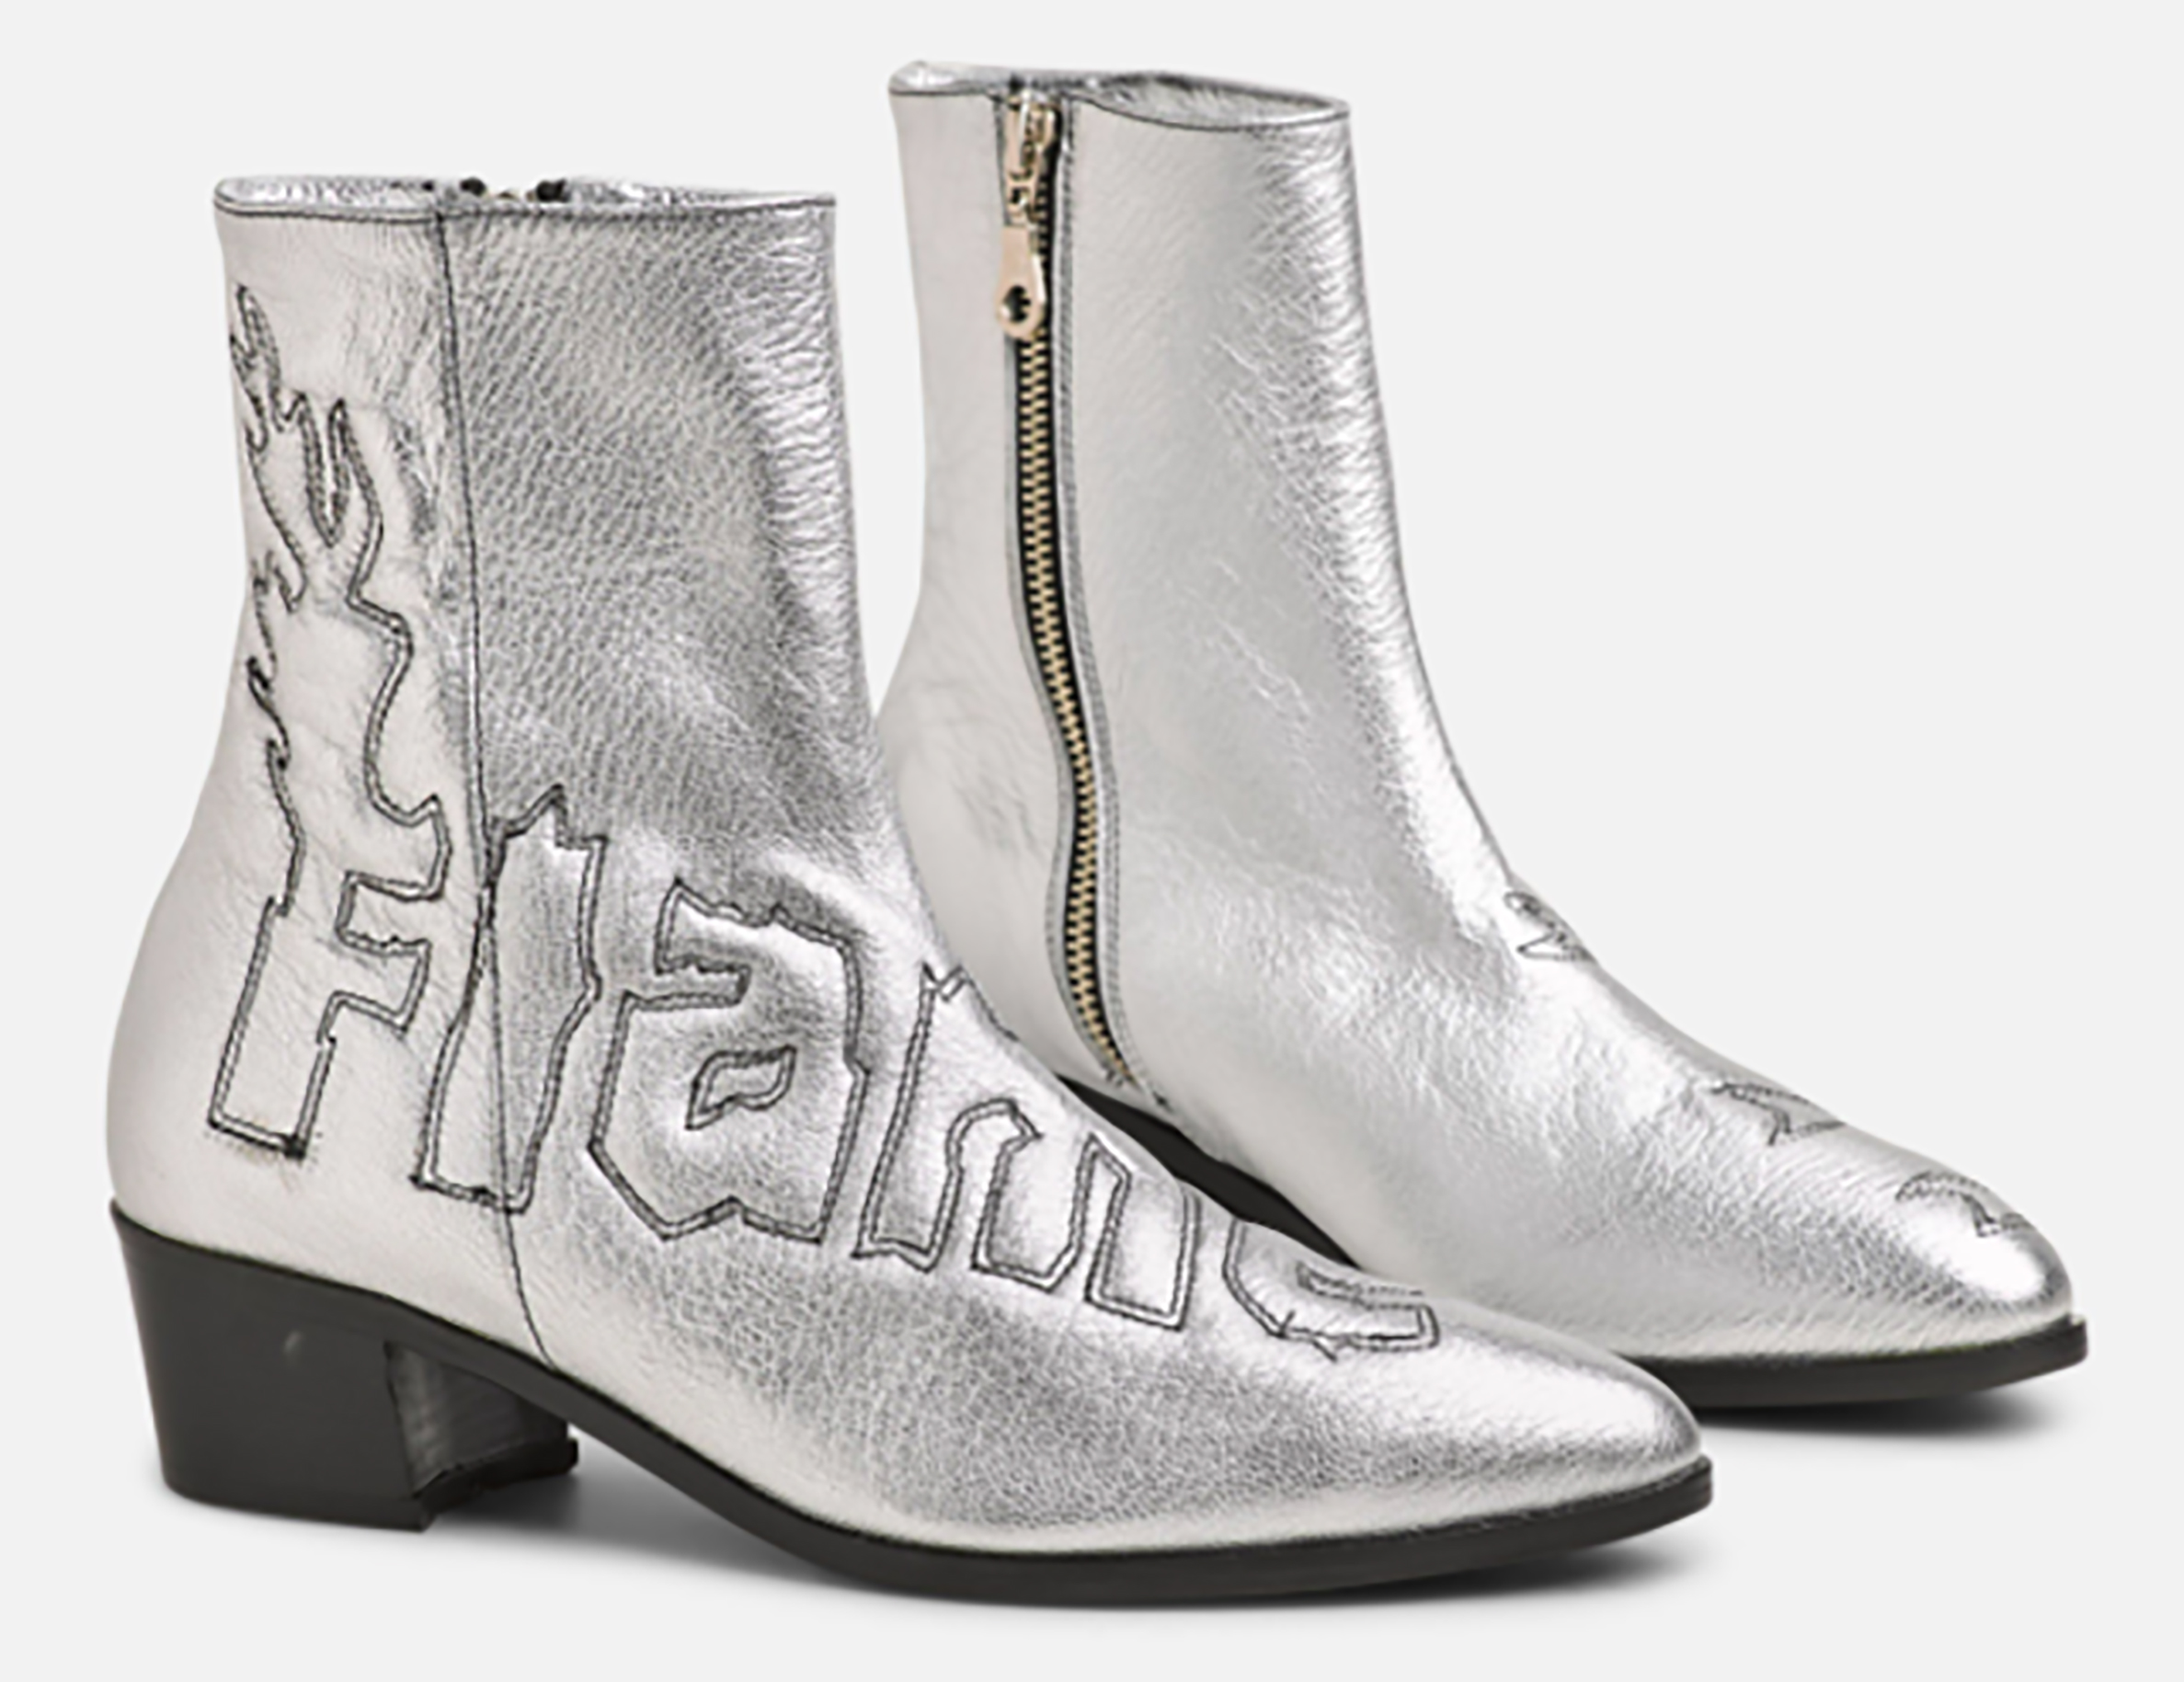 - The Flame Boot by Modern Vice. Fun Fact:Their vegetable tanned leather comes from the finest tanneries in the world located in either the USA or Italy. Made in NYC.https://www.modernvice.com/products/the-flame-boot?utm_medium=cpc&utm_campaign=Shopping-feed&utm_term=Home&utm_source=googleShopping+%28via+Shopping+Feed%29Instagram:@modernvice